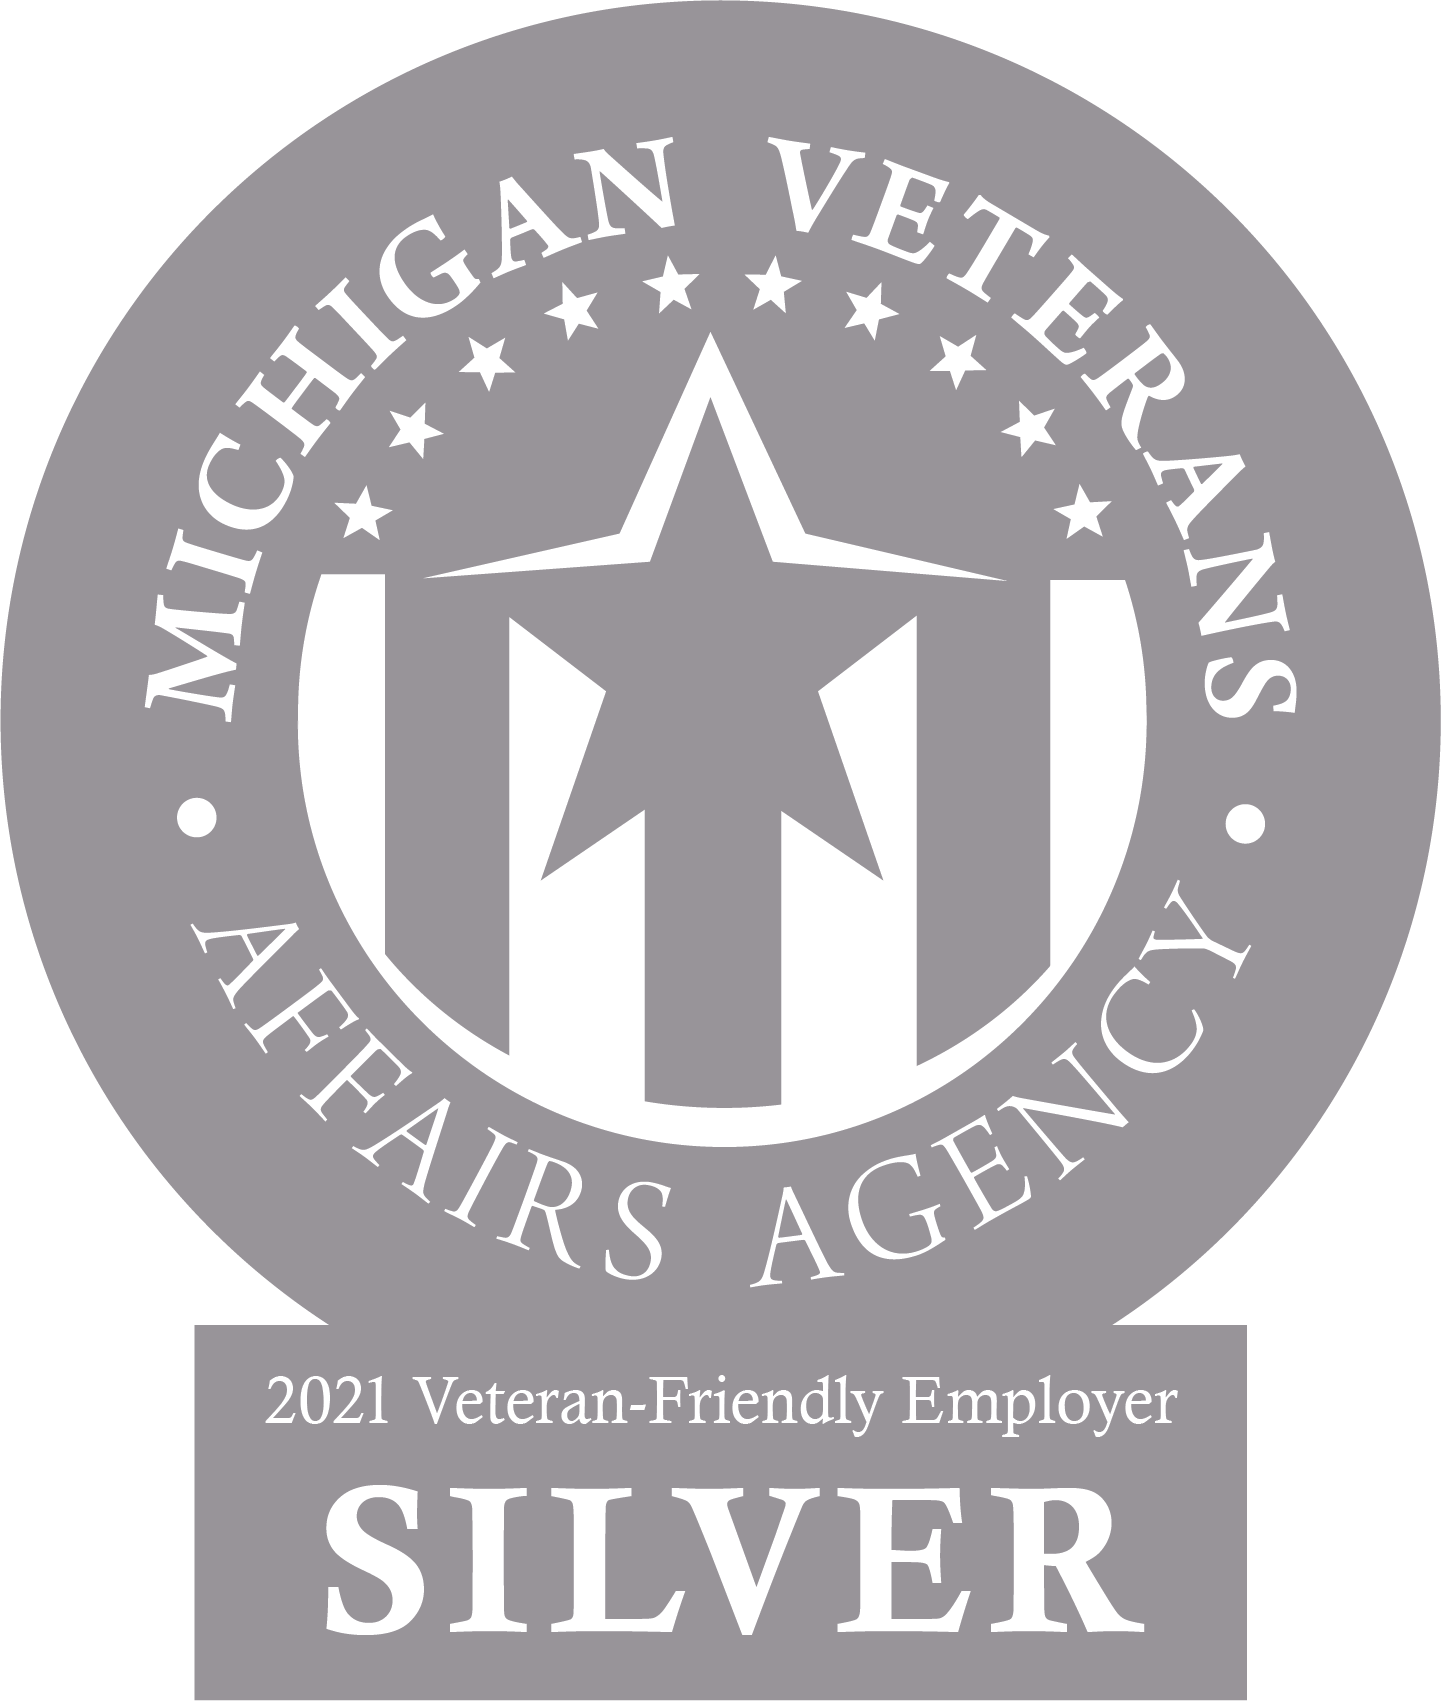 Michigan Veterans Affairs Agency 2021_Silver Certified Employer